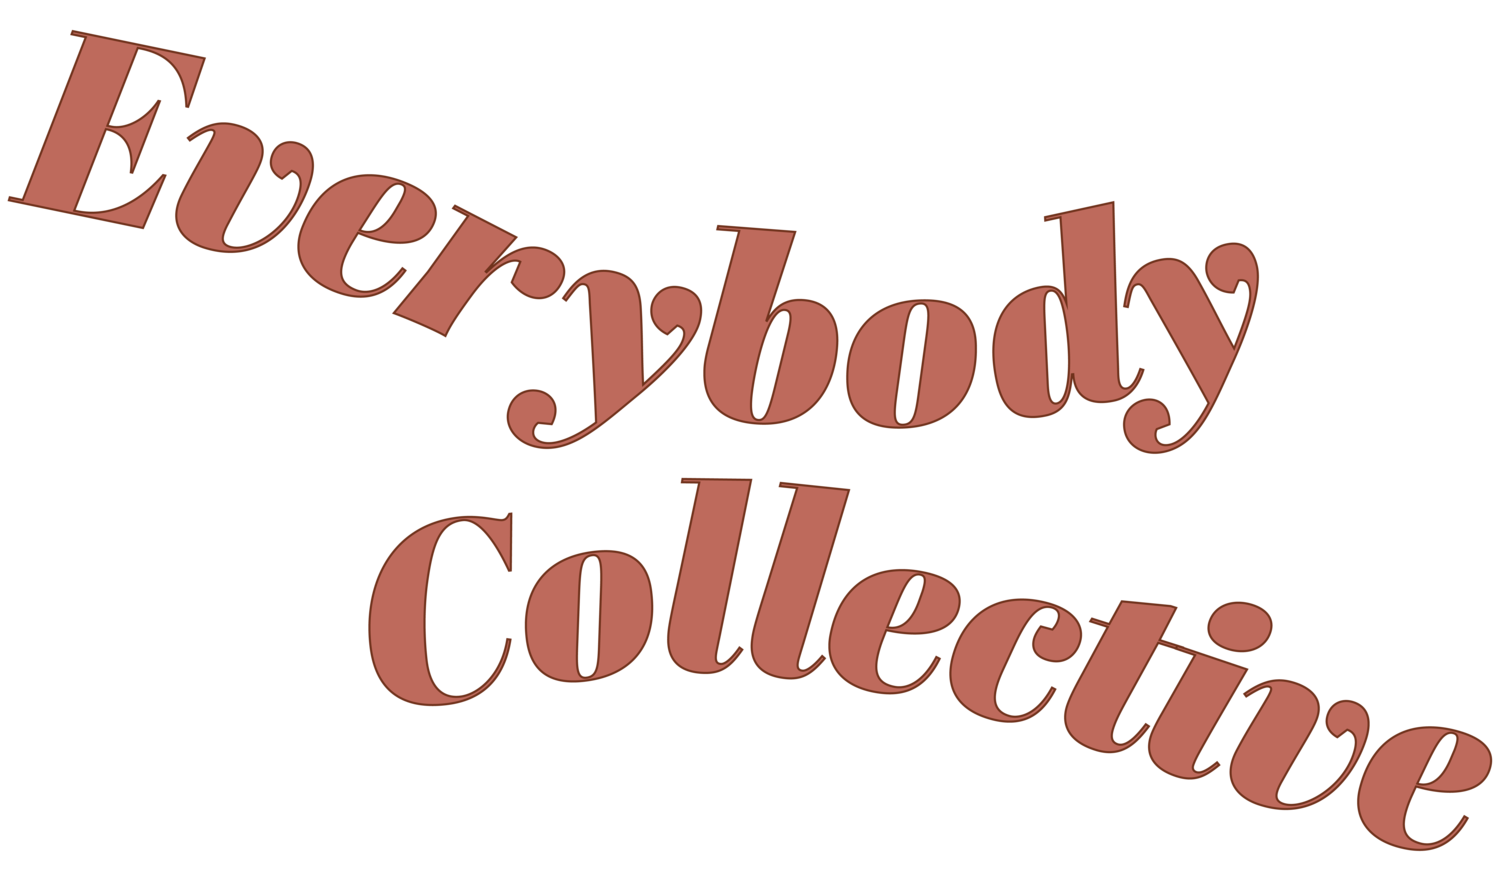 Everybody Collective